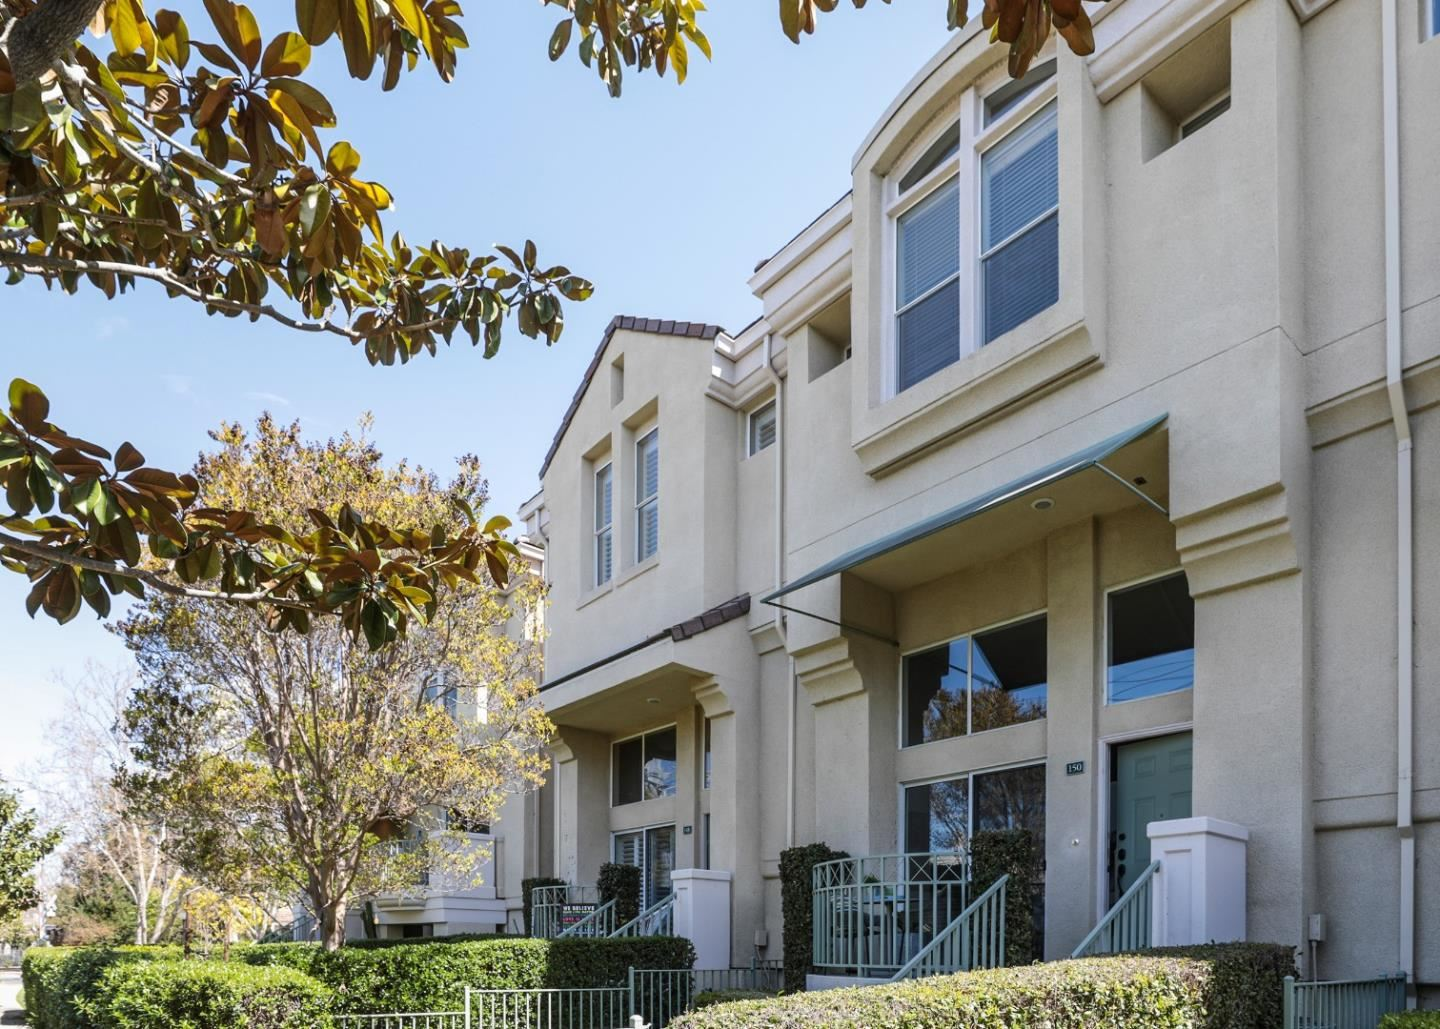 Photo for 150 Holly CT, MOUNTAIN VIEW, CA 94043 (MLS # ML81838001)